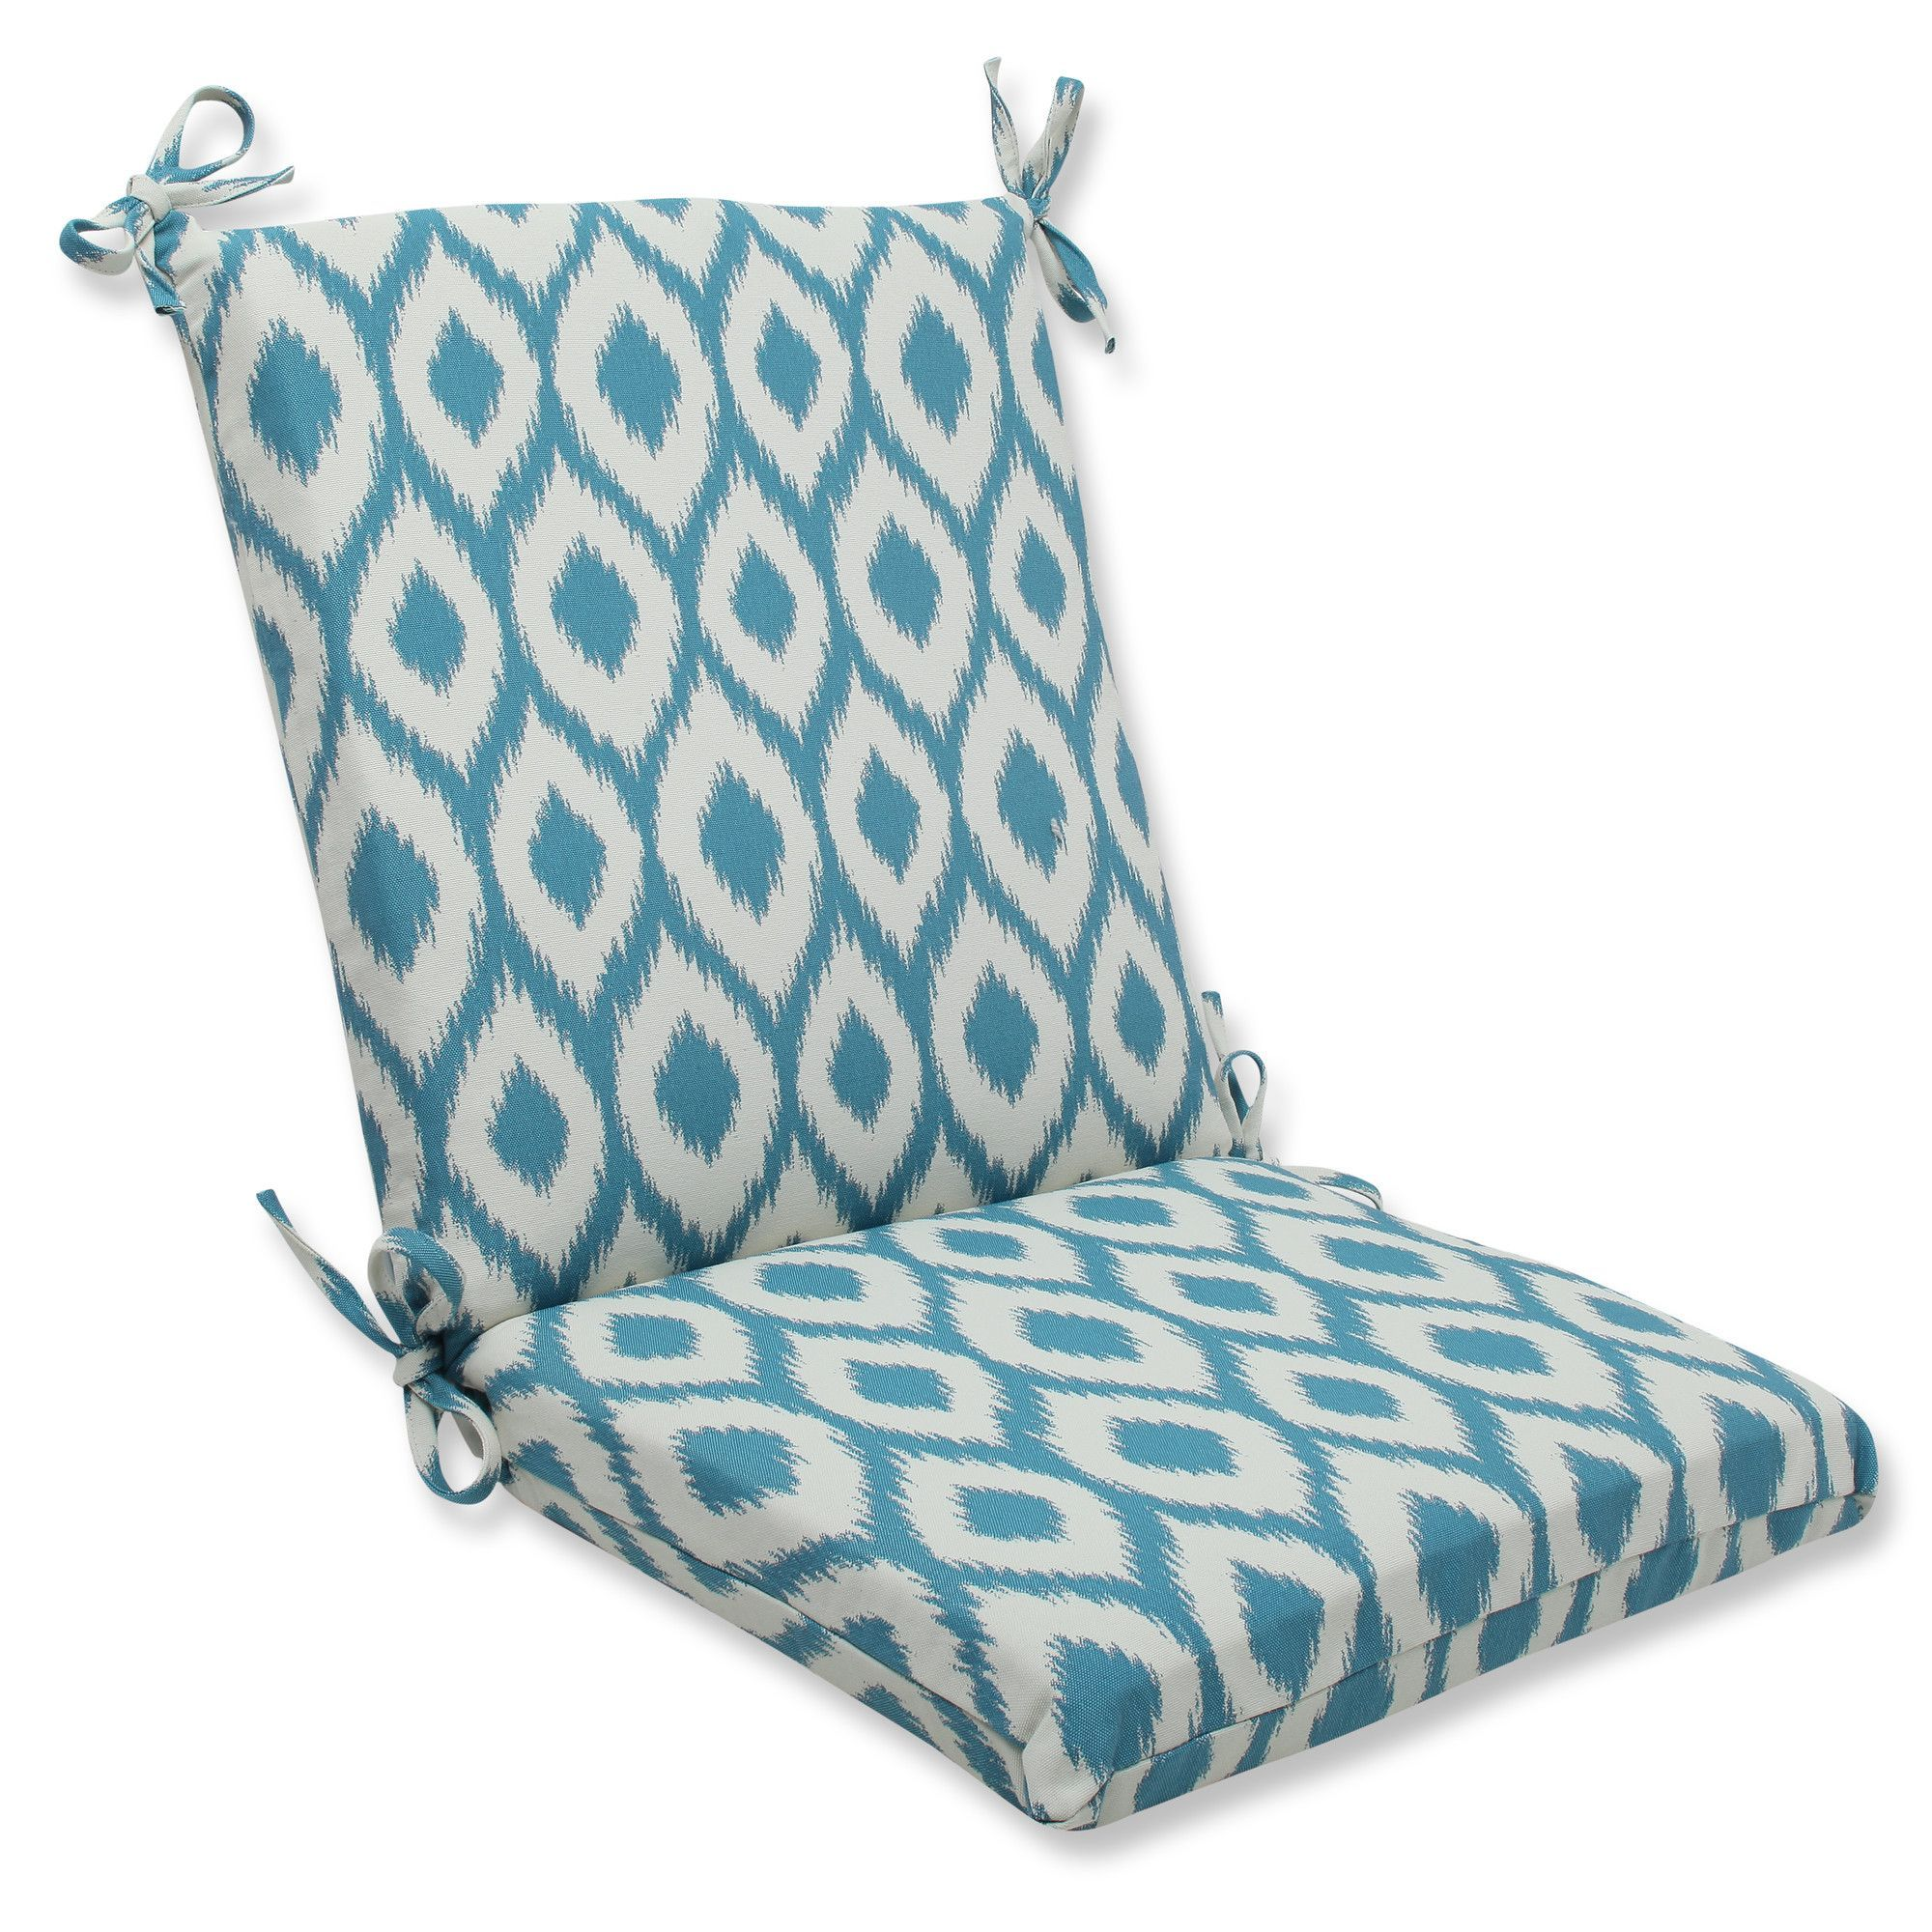 shivali outdoor lounge chair cushion products pinterest